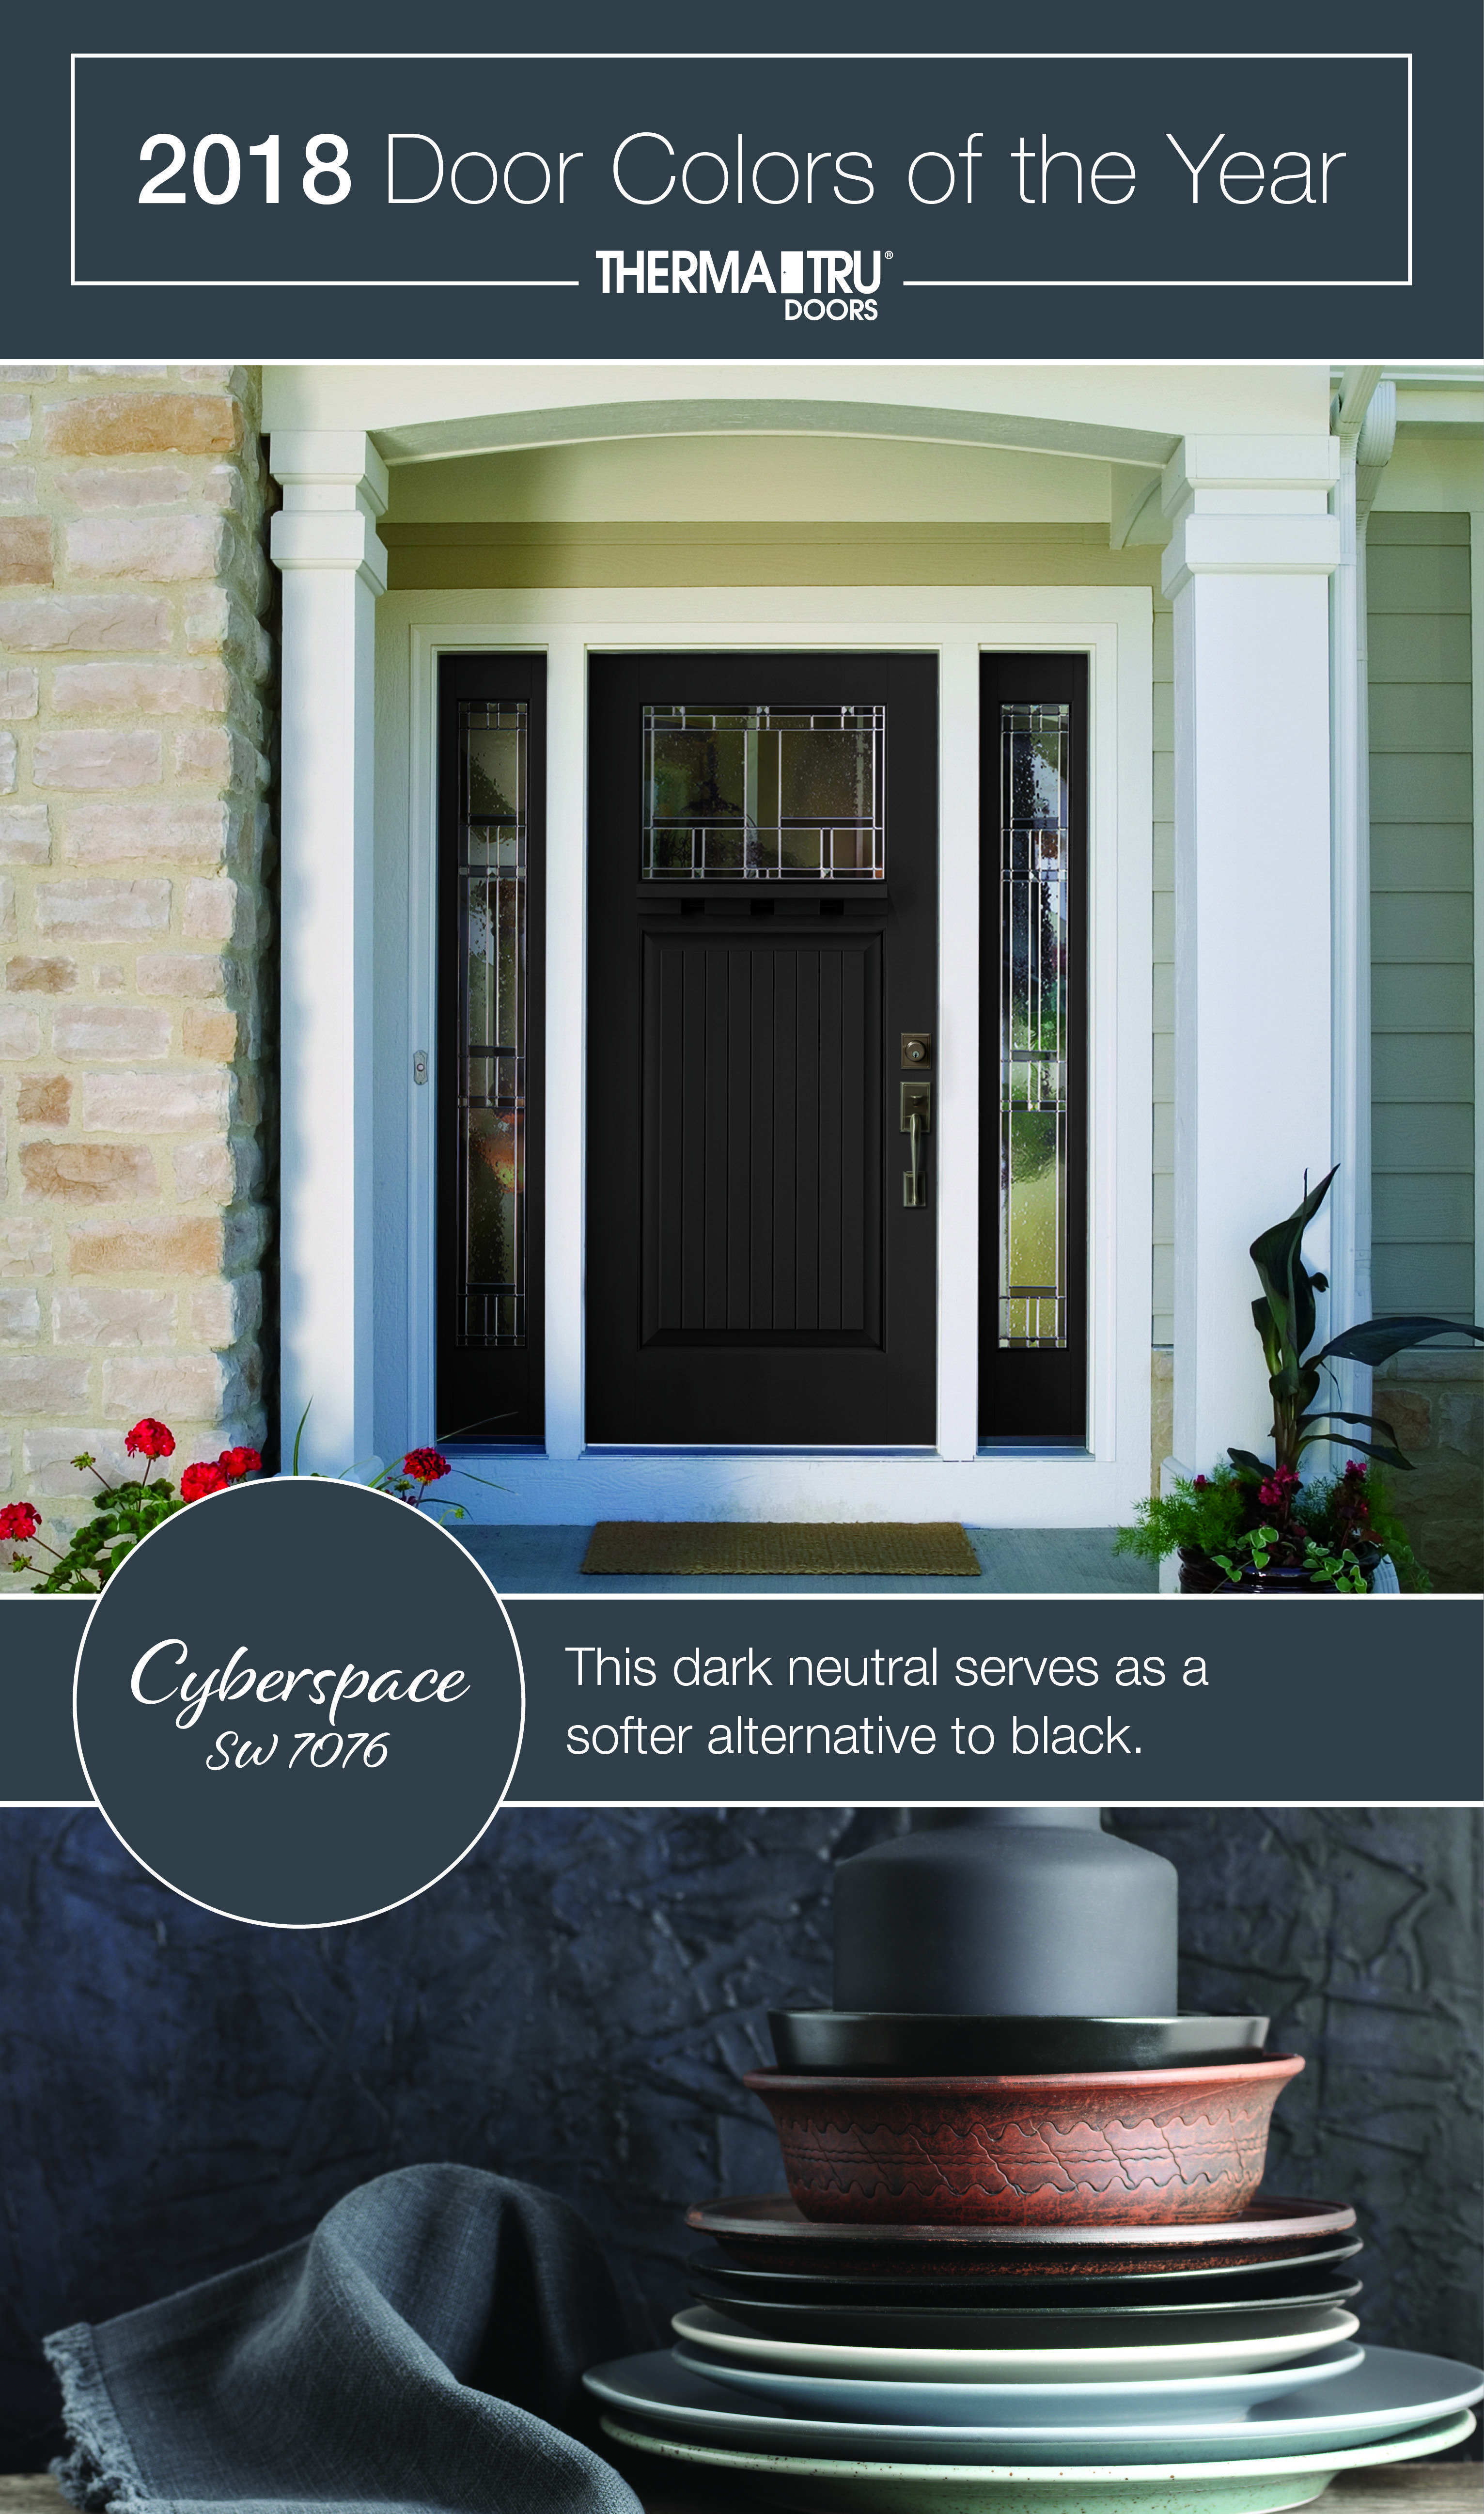 This Dark Neutral Serves As A Softer Alternative To Black 2018 Therma Tru Door Colors Of The Year Cybersp Door Color Exterior Door Colors Black Exterior Doors